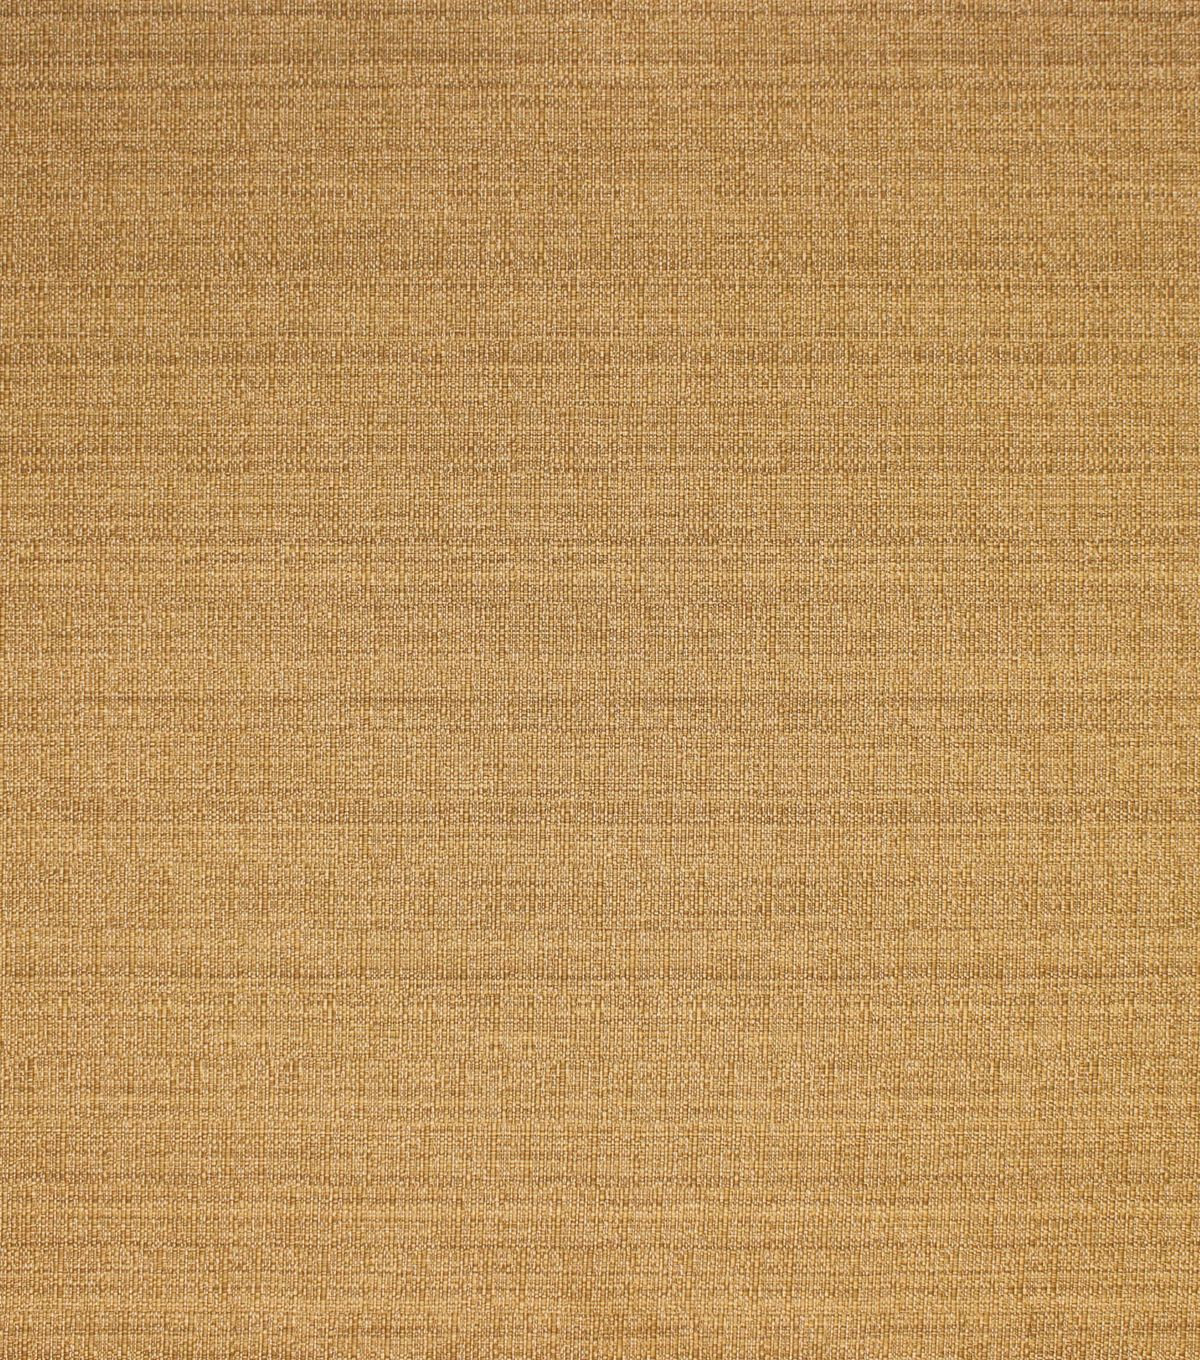 Upholstery Fabric-Barrow M8372-5816 Linen, , hi-res